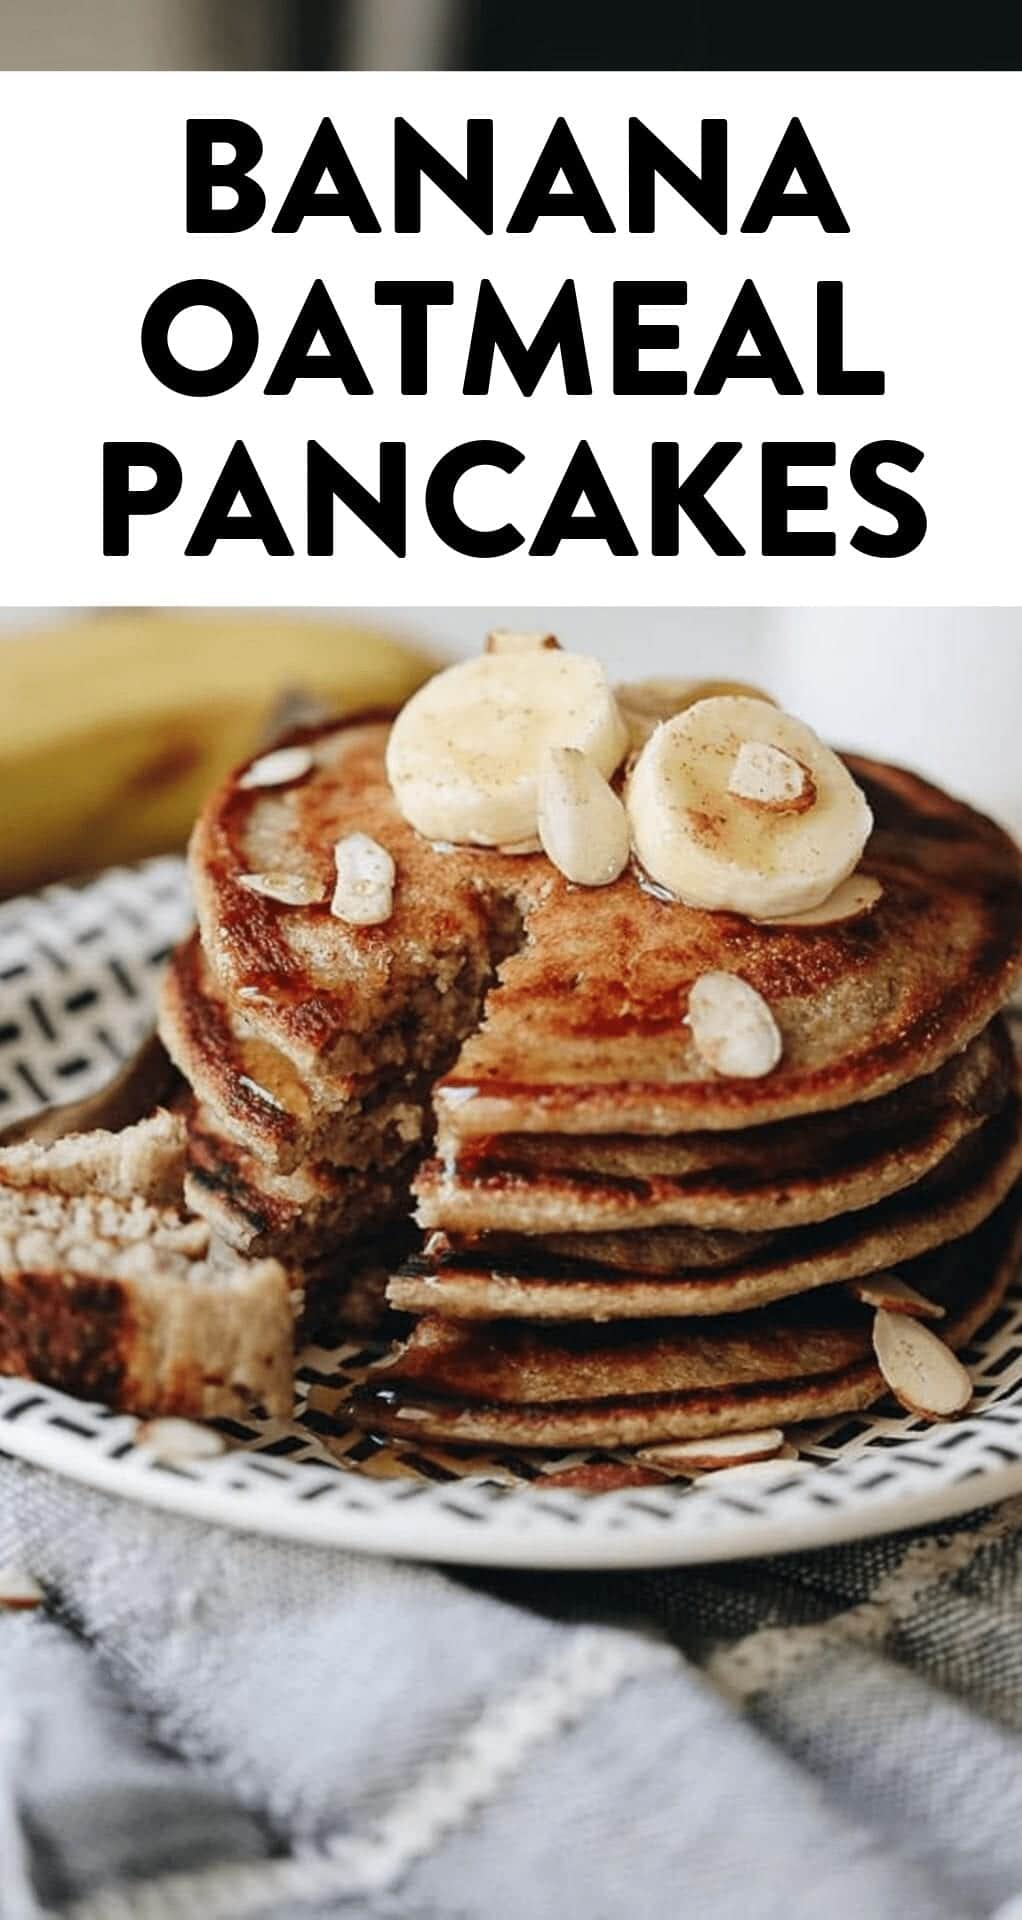 Breakfast has never tasted so good with these banana oatmeal pancakes. Easy clean up too because you can make them in your blender! #blenderpancakes #bananaoatmealpancakes #pancakes